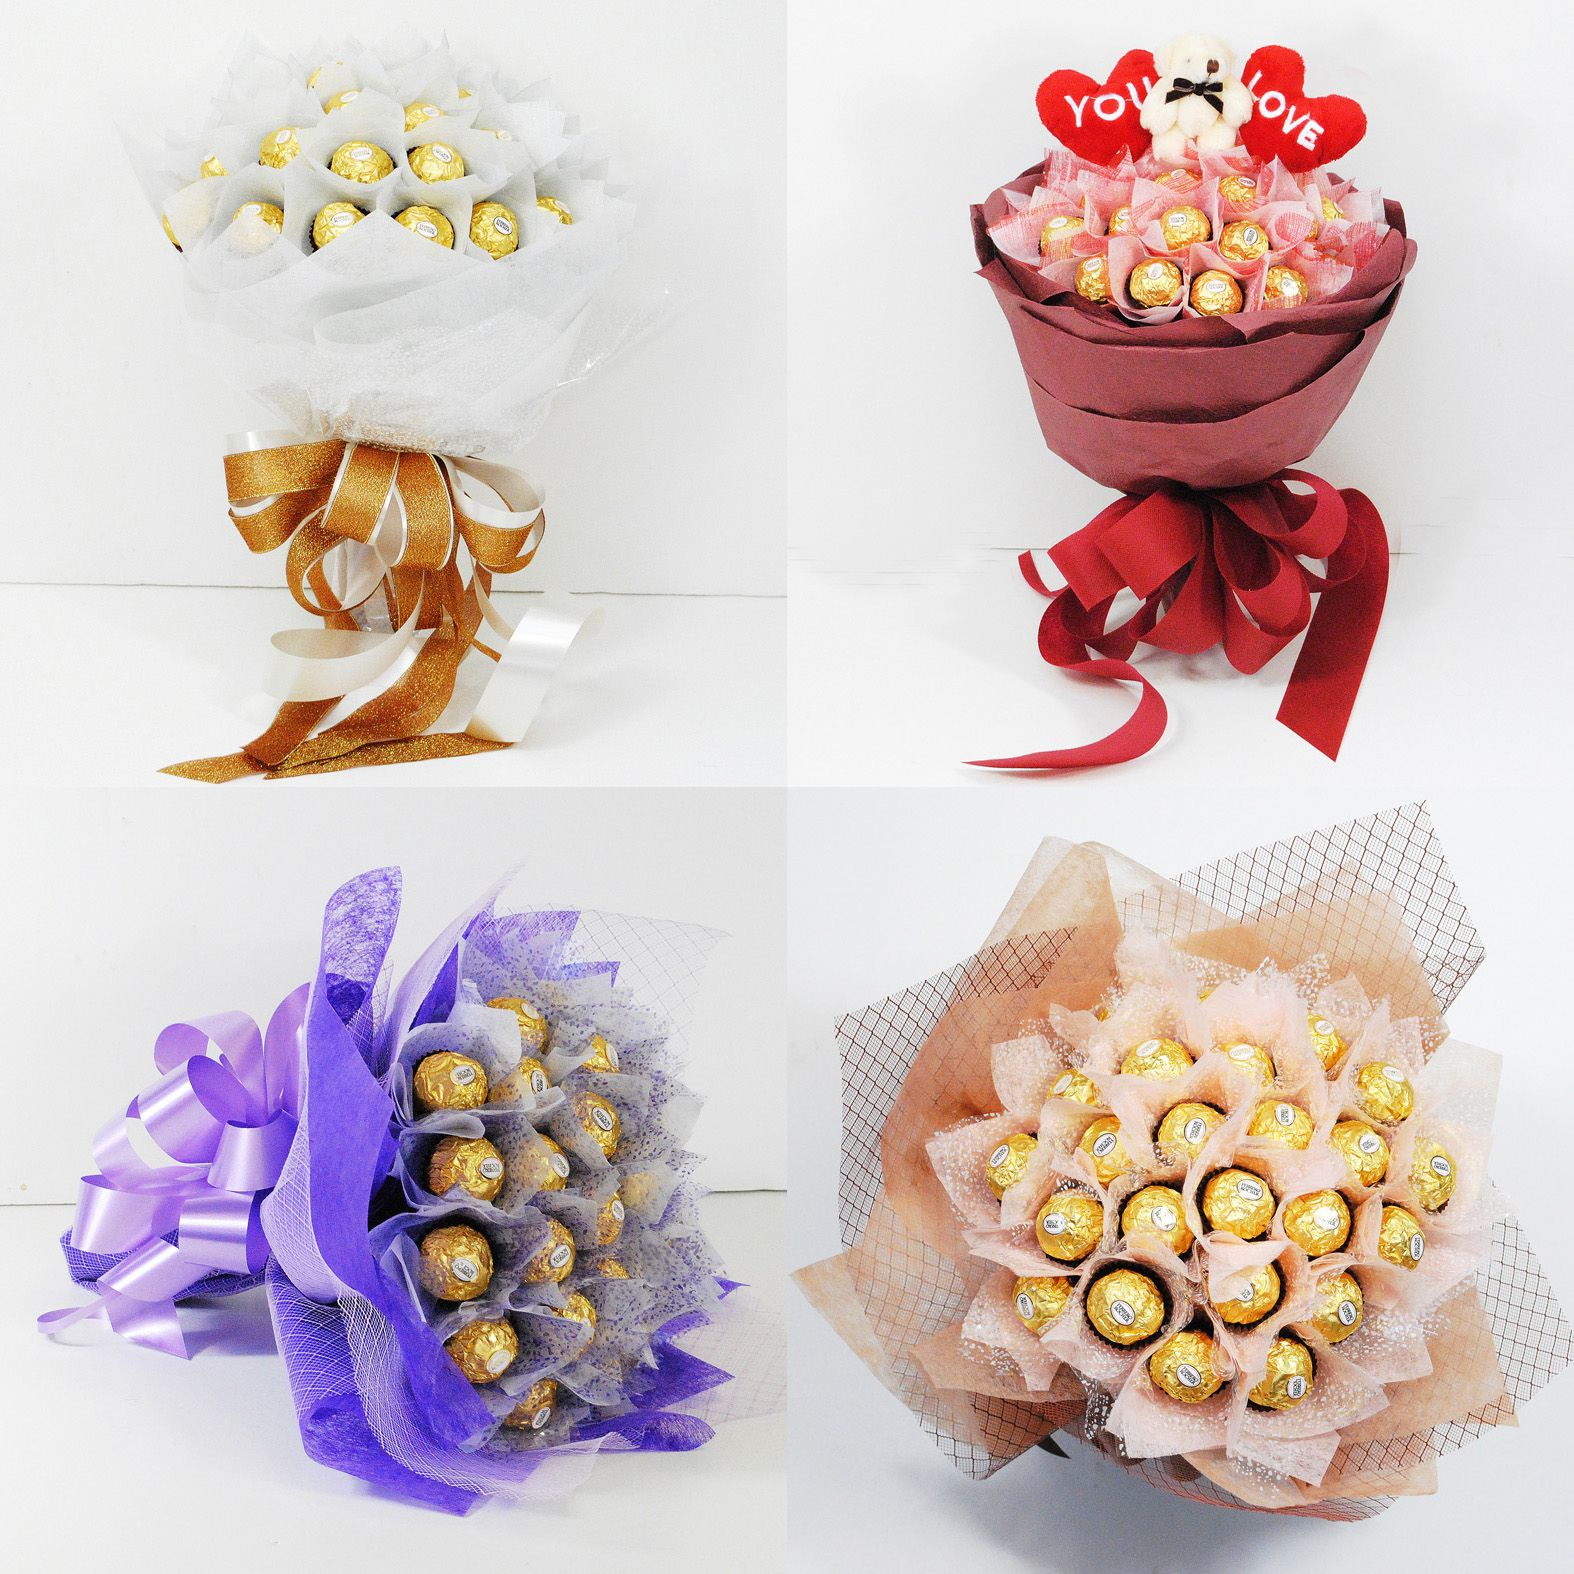 Chocolate bouquet on pinterest candy flowers bouquet of chocolate - Bouquet De Ferrero Rocher Vanuska Chocolate